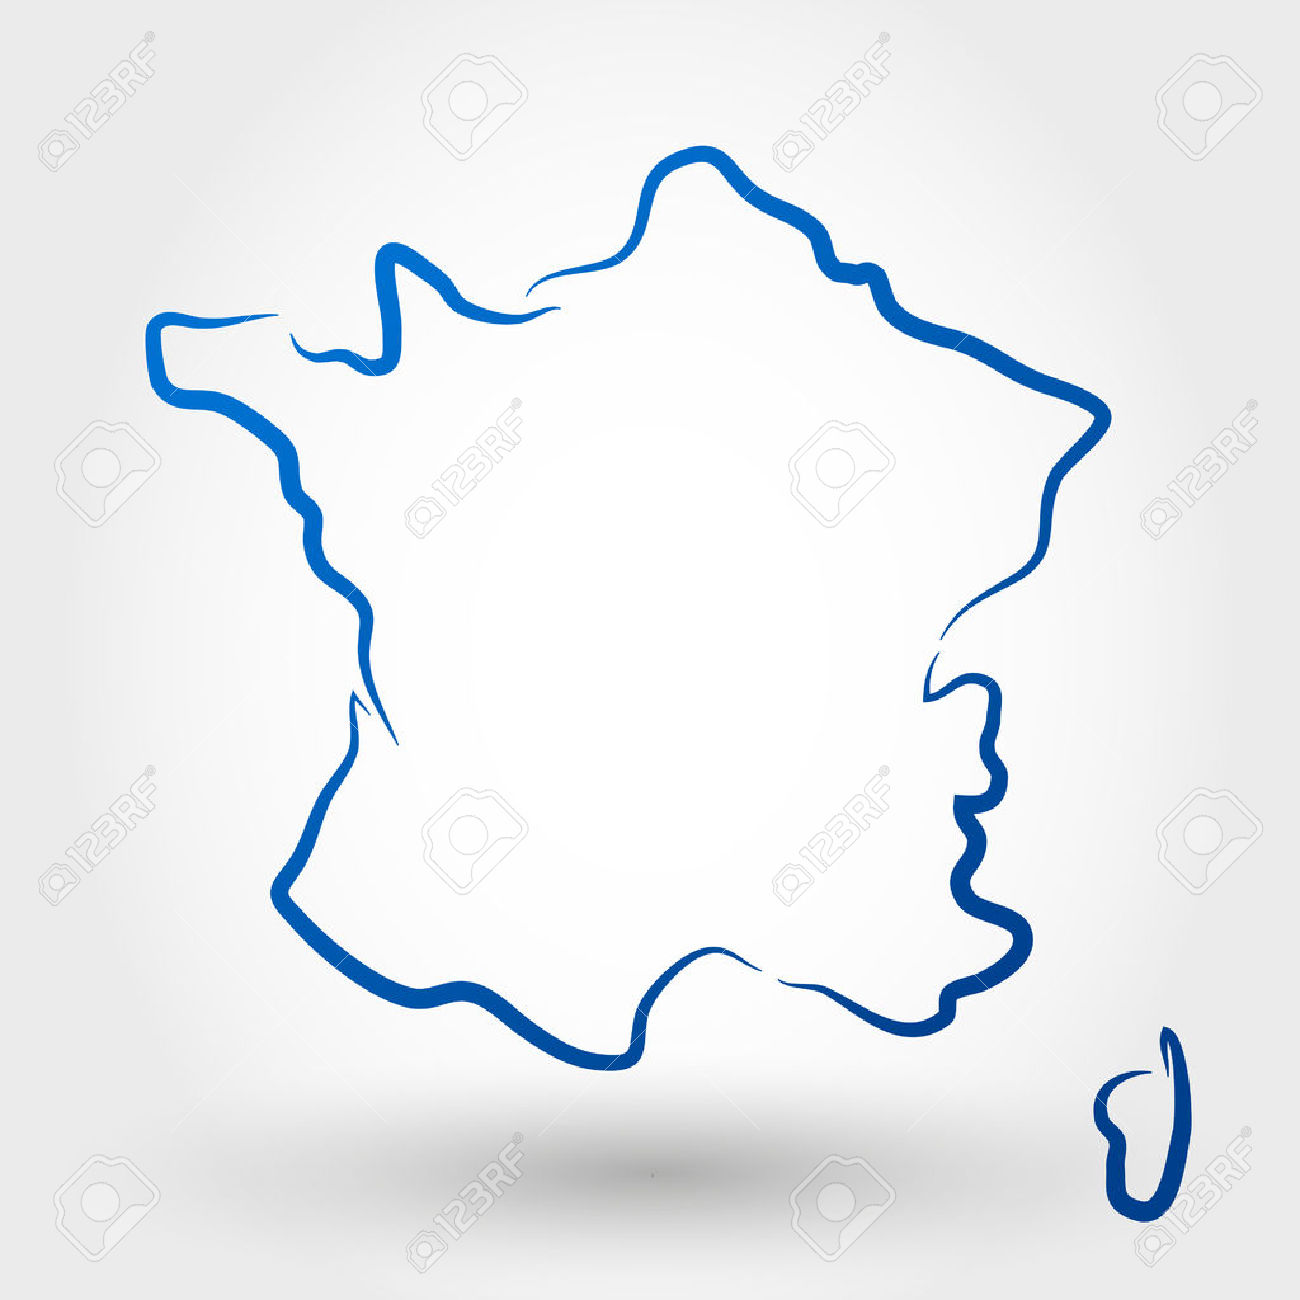 Carte De France. Carte Notion Clip Art Libres De Droits , Vecteurs.